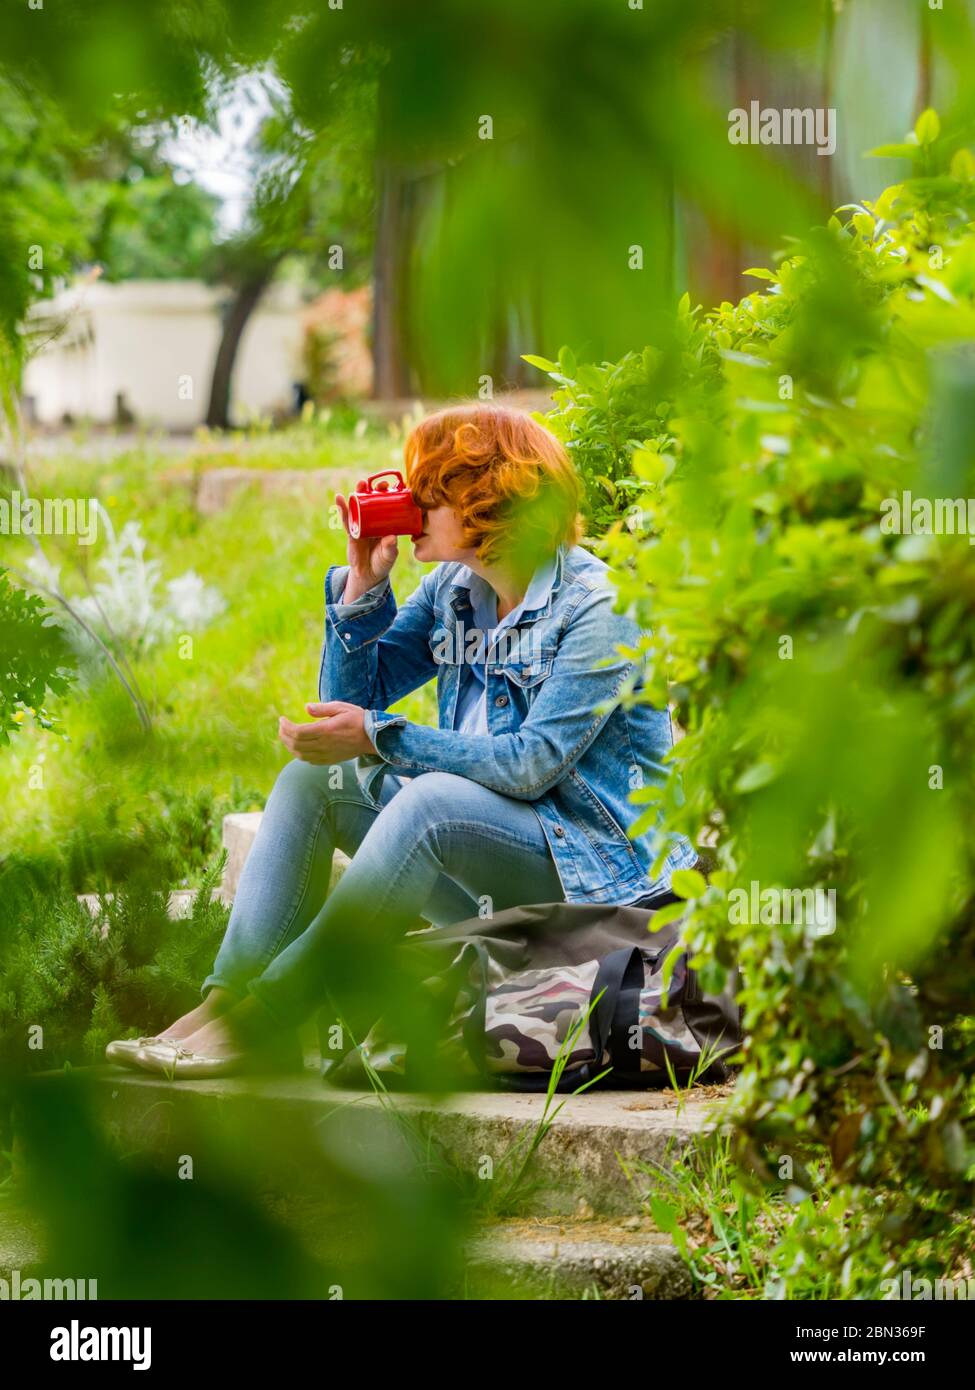 Good-looking ginger hair curly curls redhaired redhair midadult woman outdoors seated with handbag bag and drinking coffee from Red cup refreshment Stock Photo